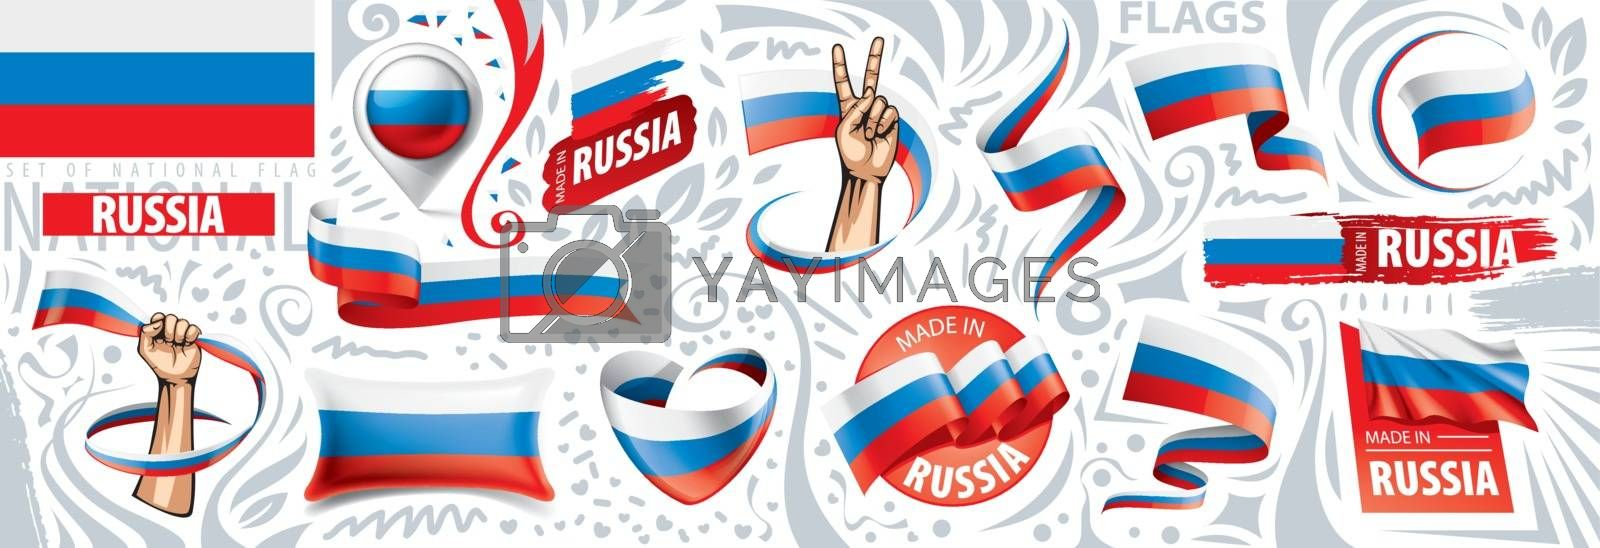 Vector set of the national flag of Russia in various creative designs.